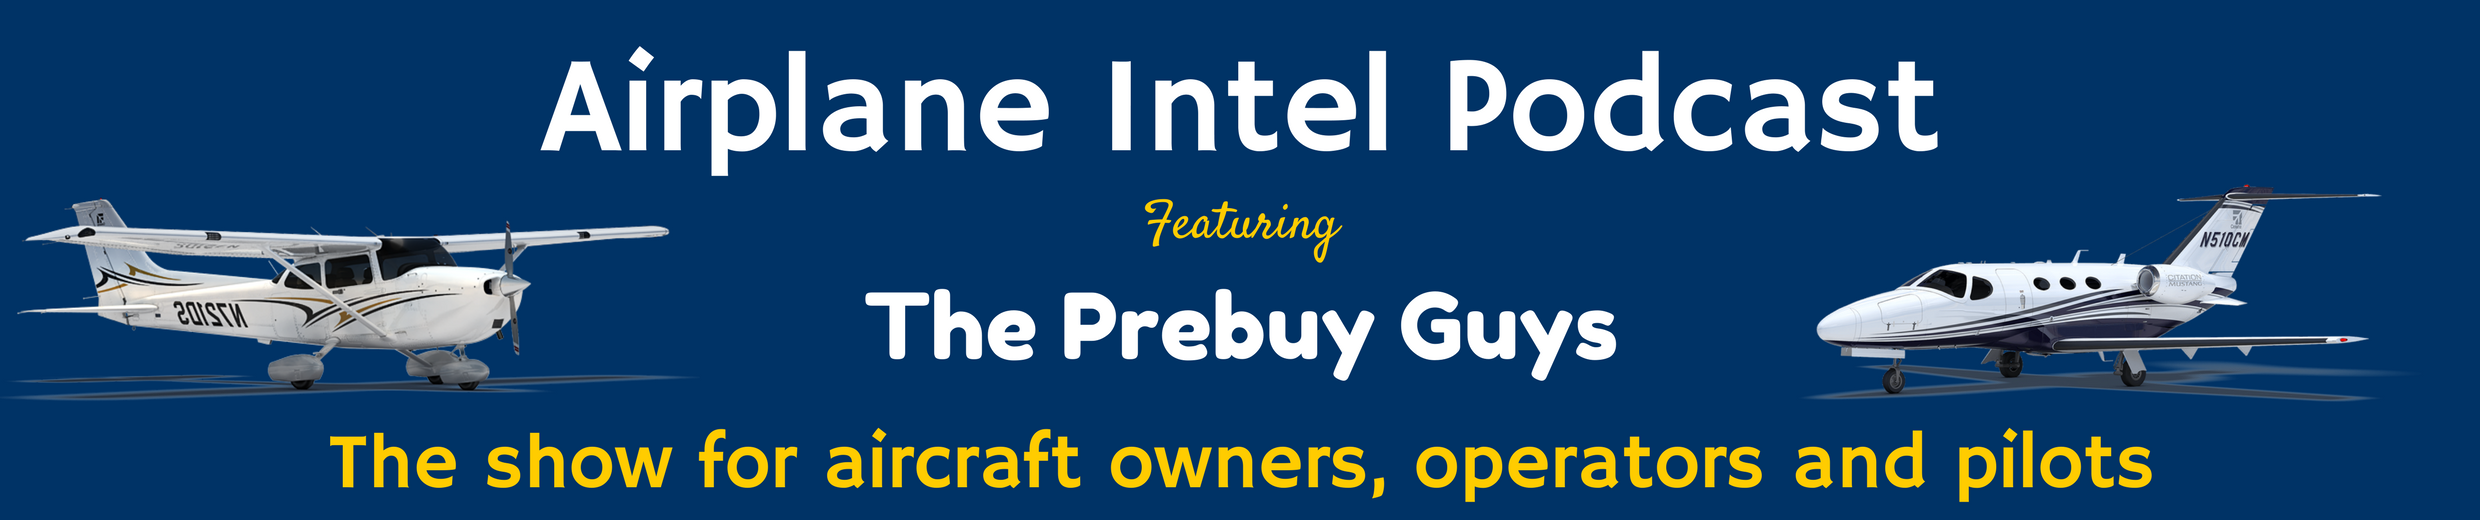 Airplane Intel Podcast Ep 003